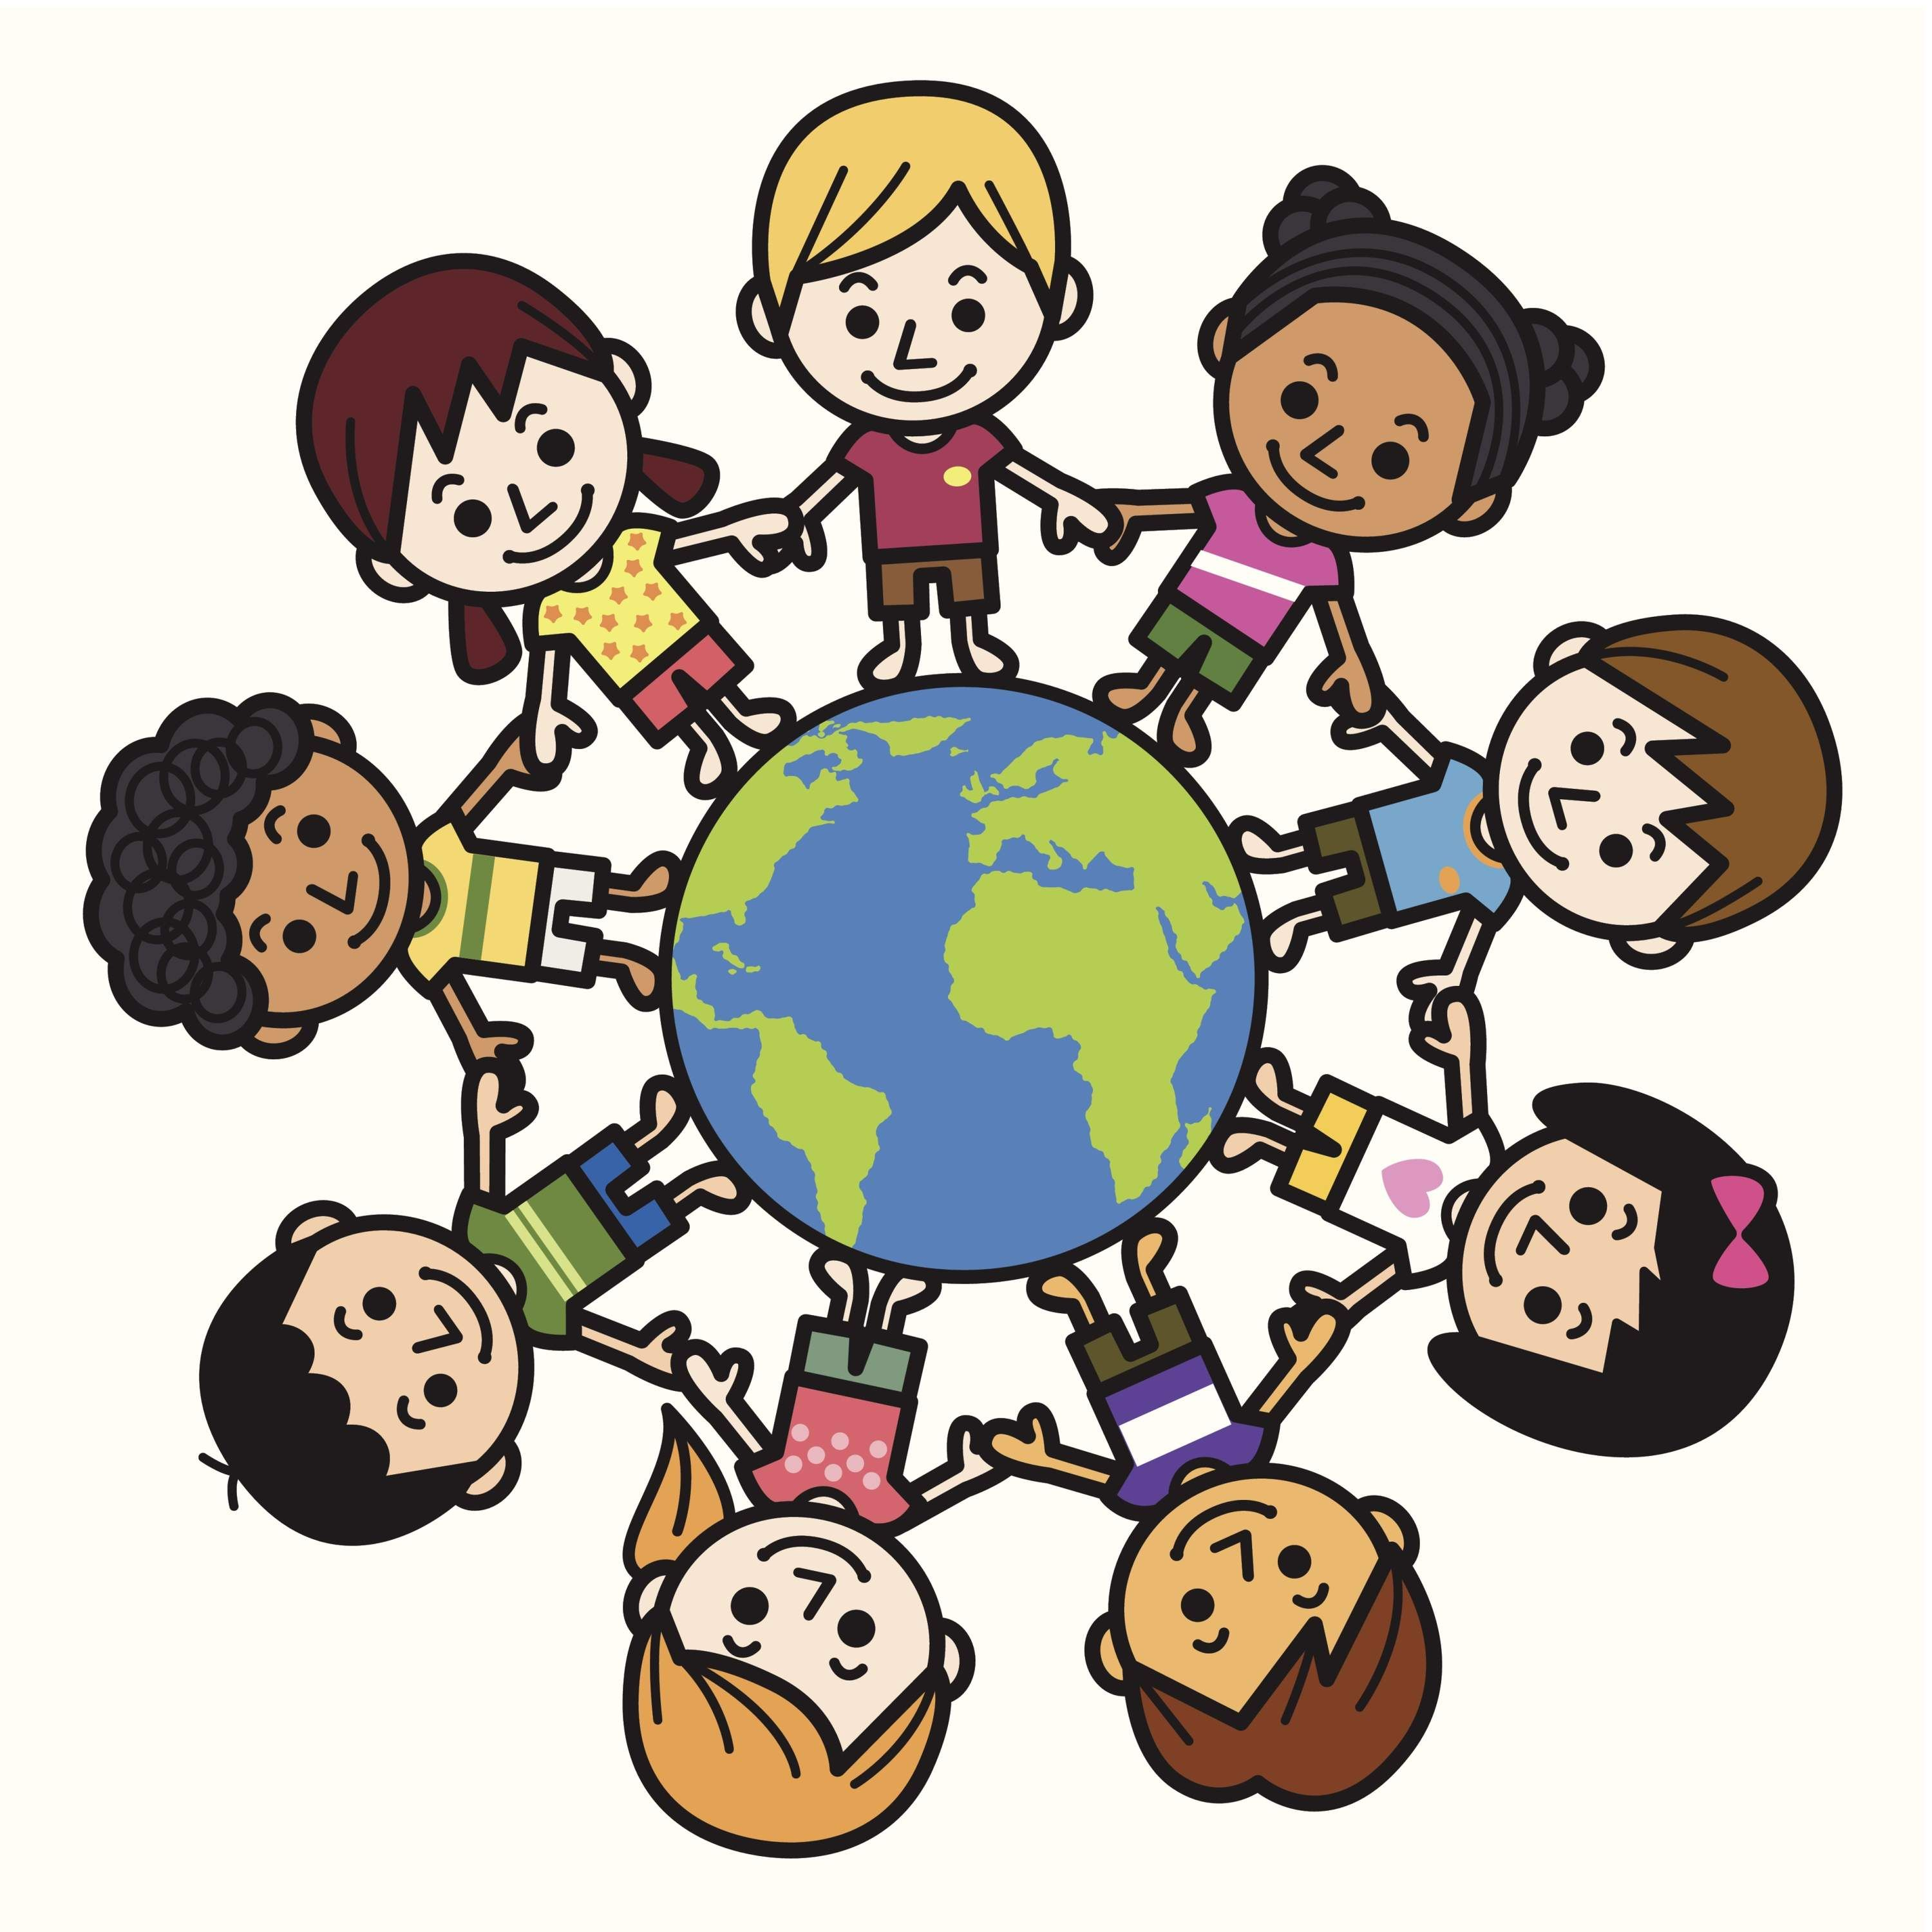 happy smiling multicultural kids around the world clipart free rh pinterest com multicultural clip art borders multicultural clipart black and white